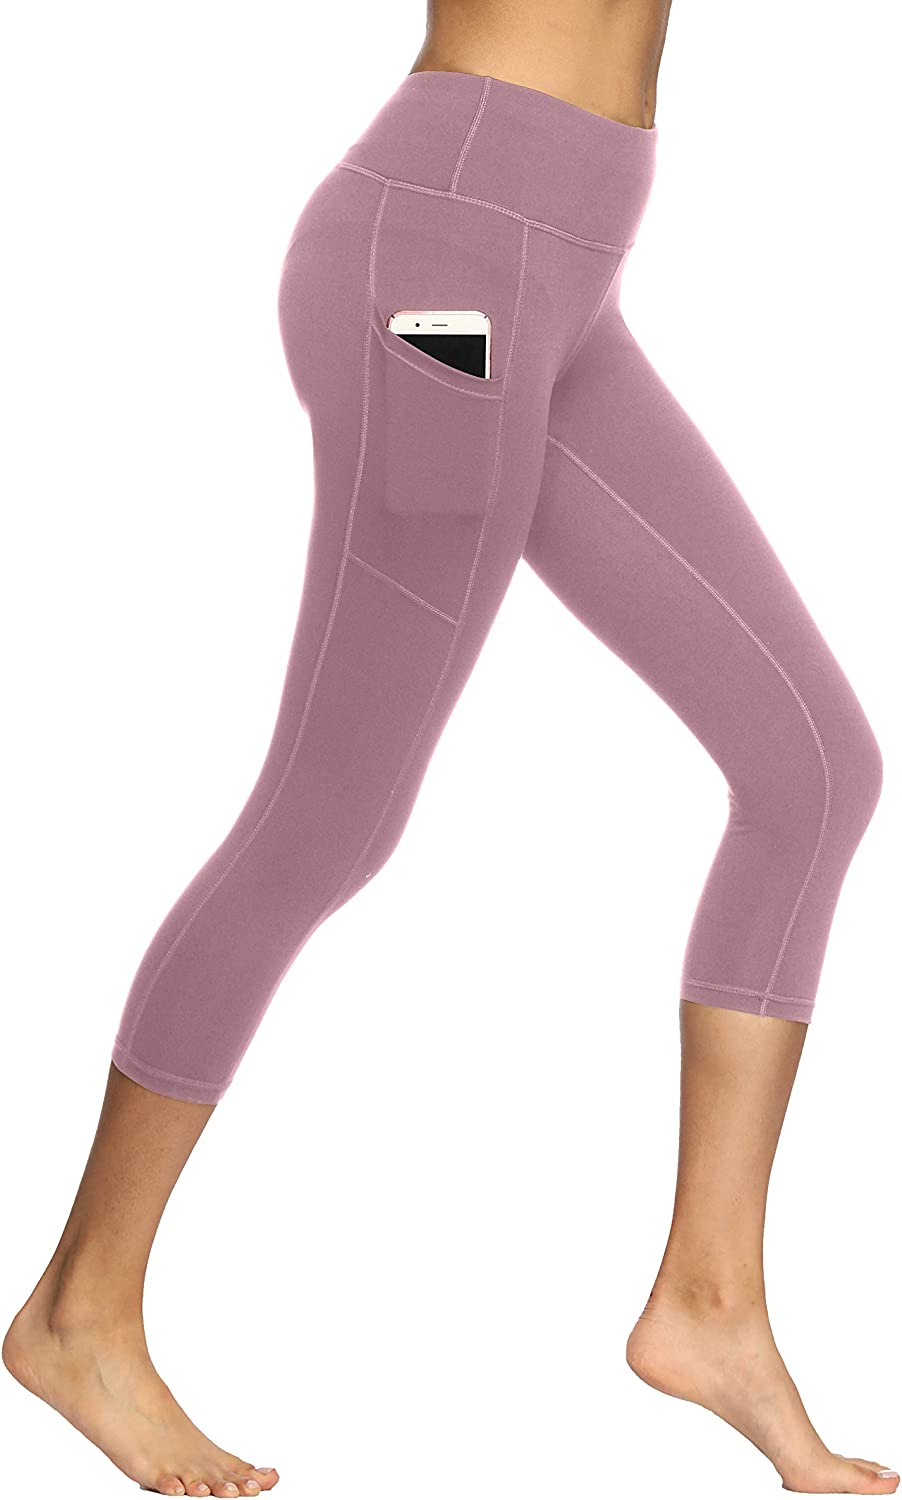 Fengbay/ High/ Waist/ Yoga/ Pants/ with/ Pockets,Yoga/ Capris/ Tummy/ Control/ Workout/ Running/ 4/ Way/ Stretch/ Capris/ Leggings